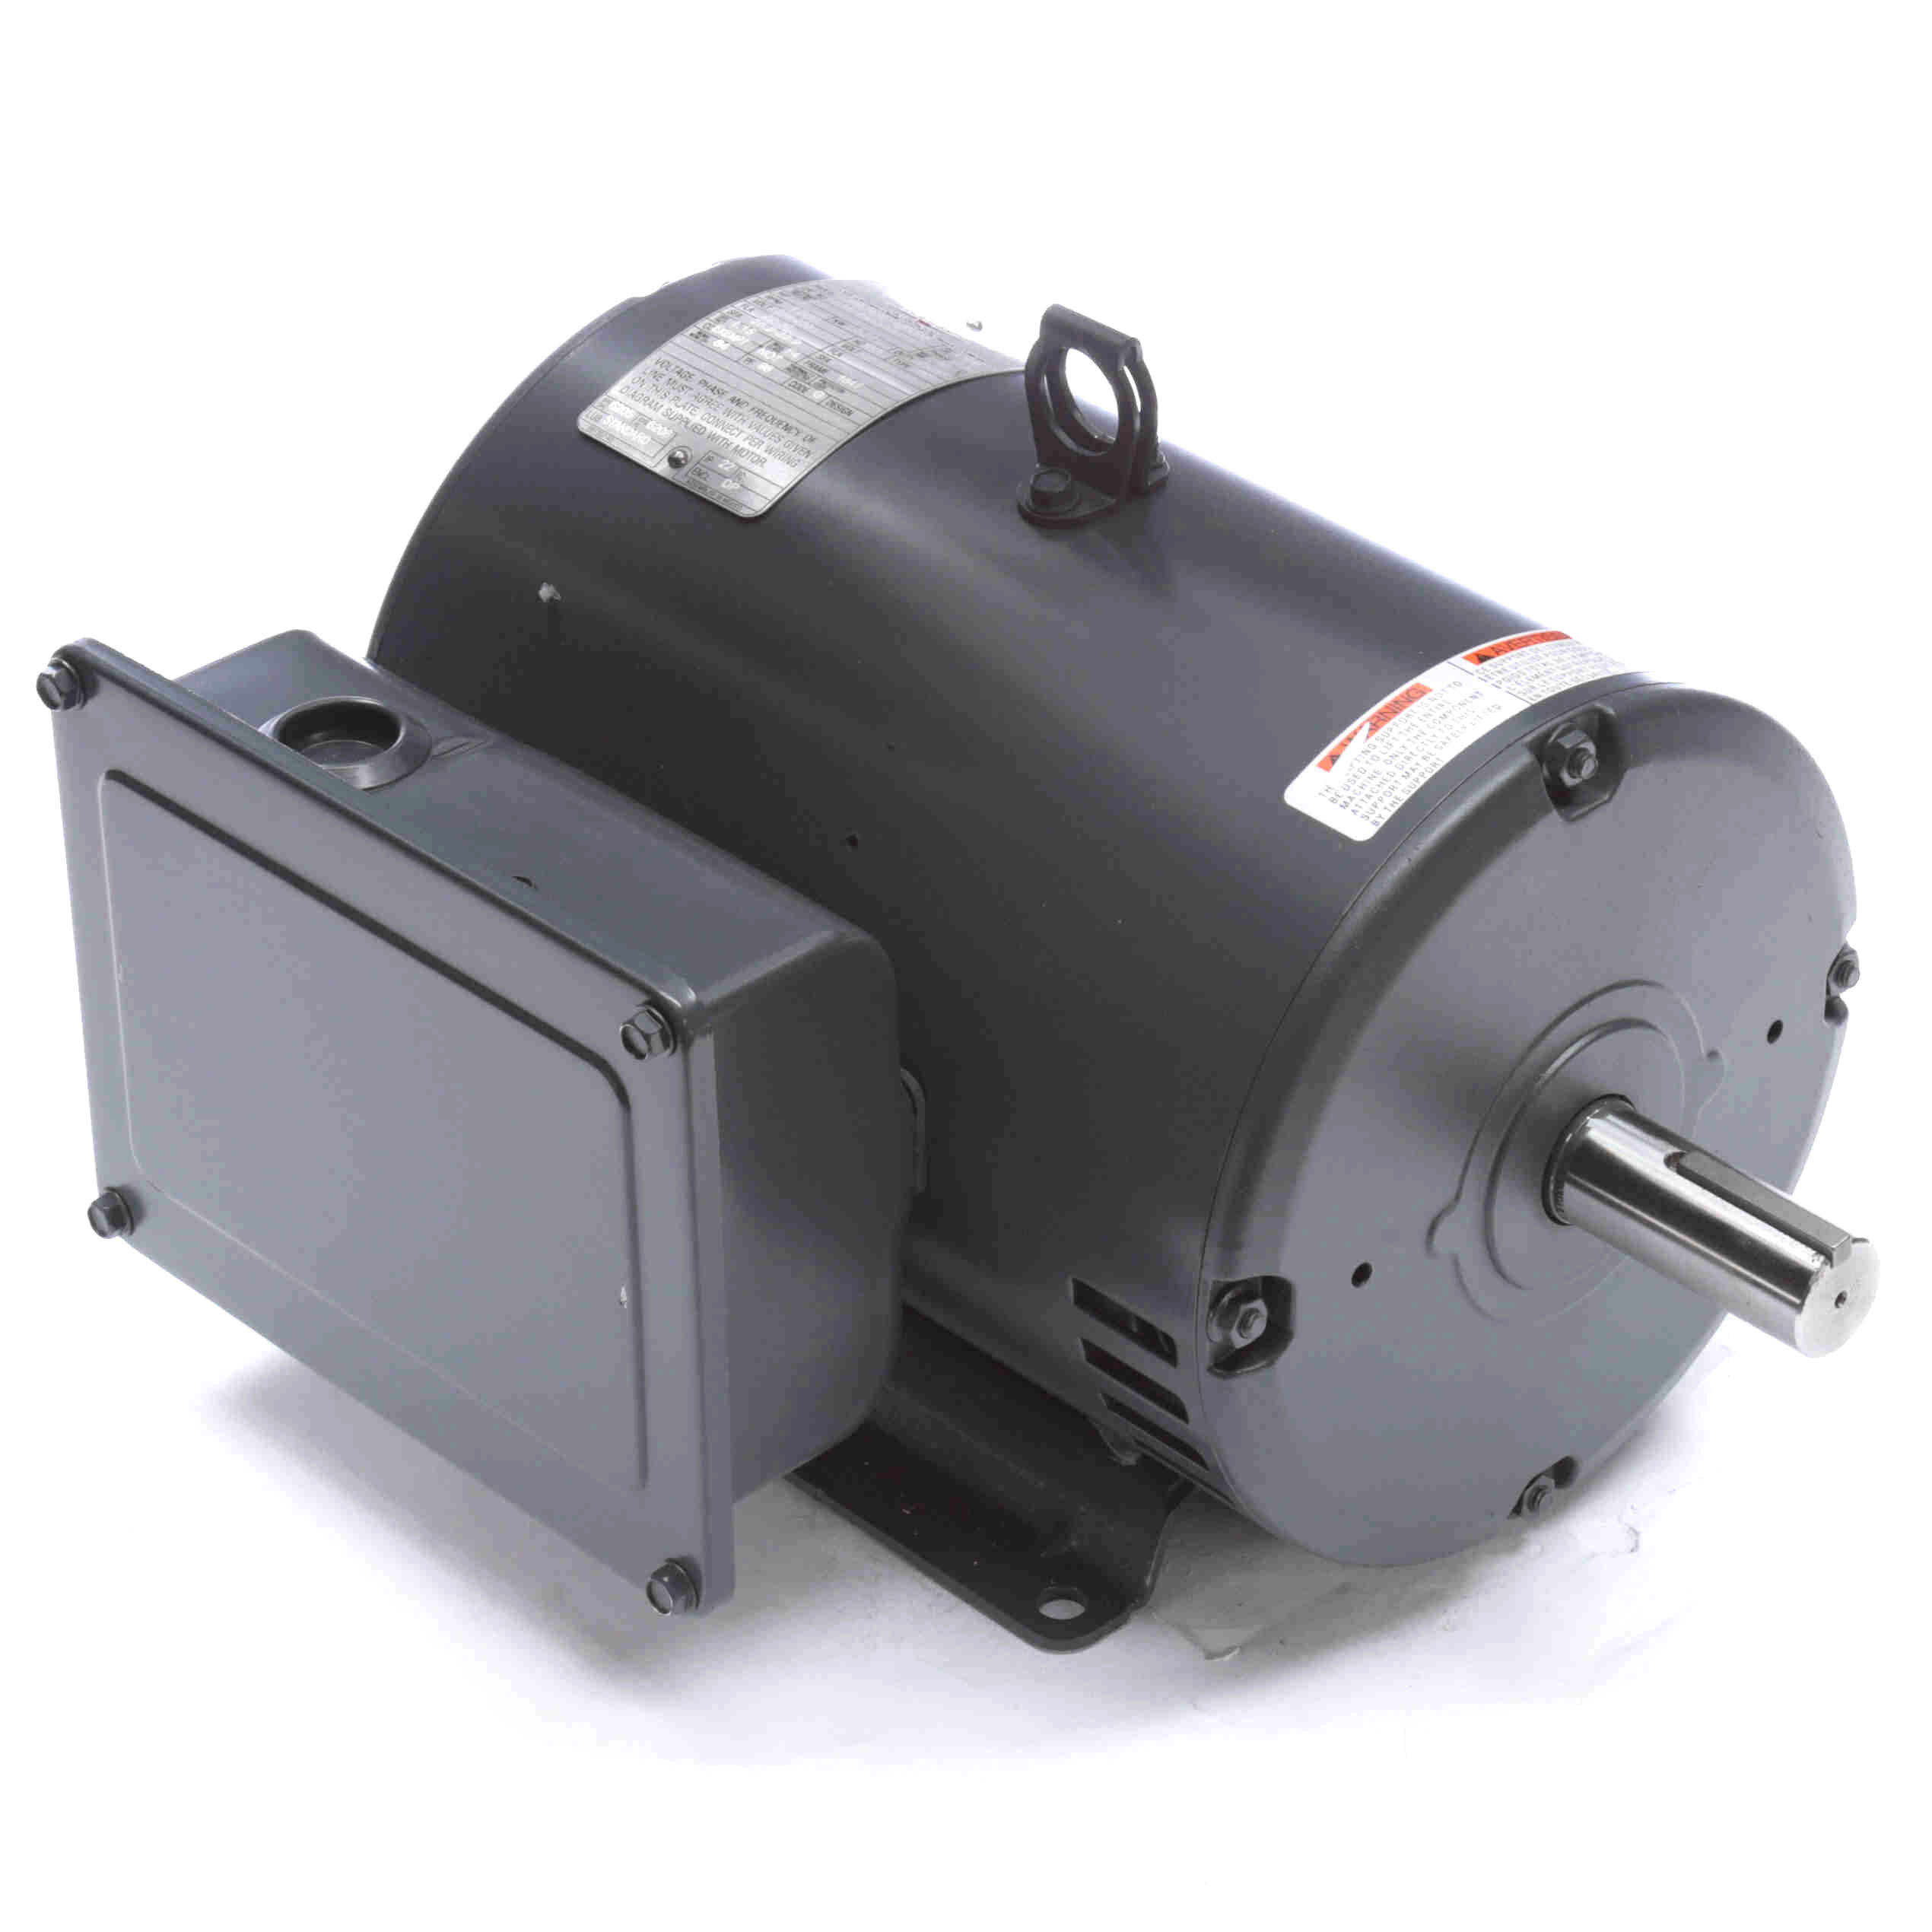 LM24682 Lincoln 5HP Electric Motor, 1800RPM